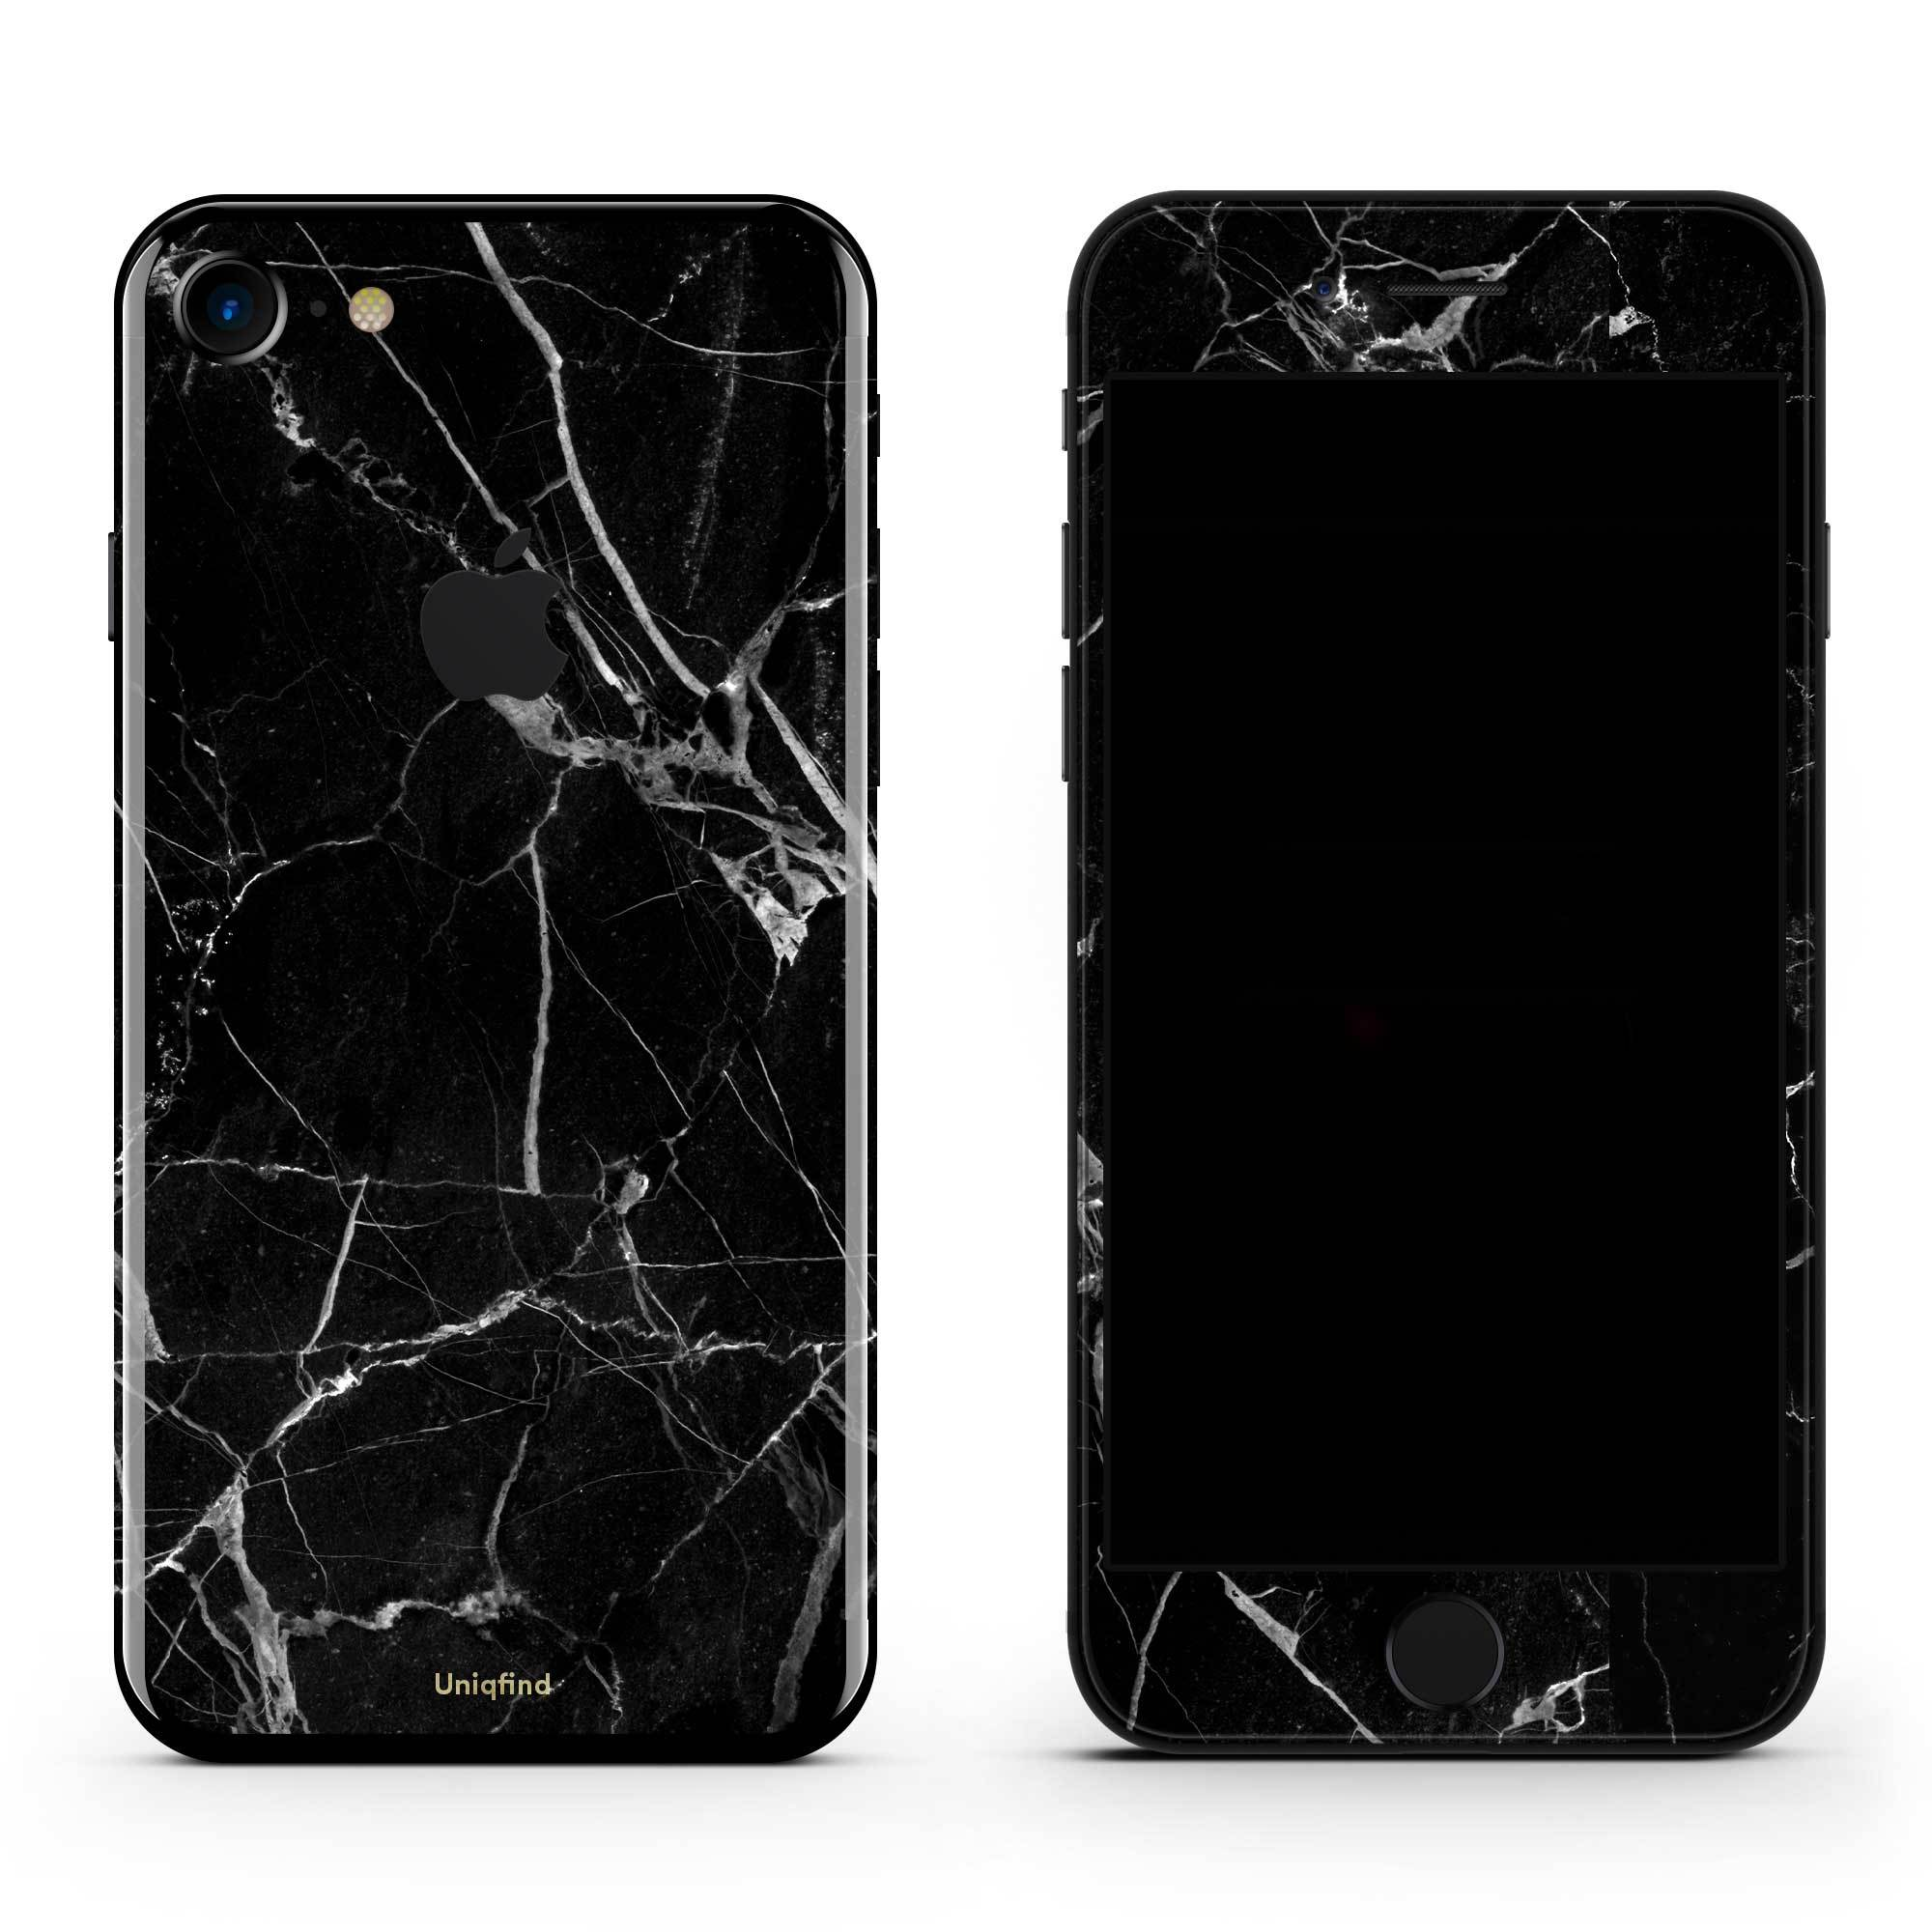 Black Hyper Marble iPhone 8 Skin + Case